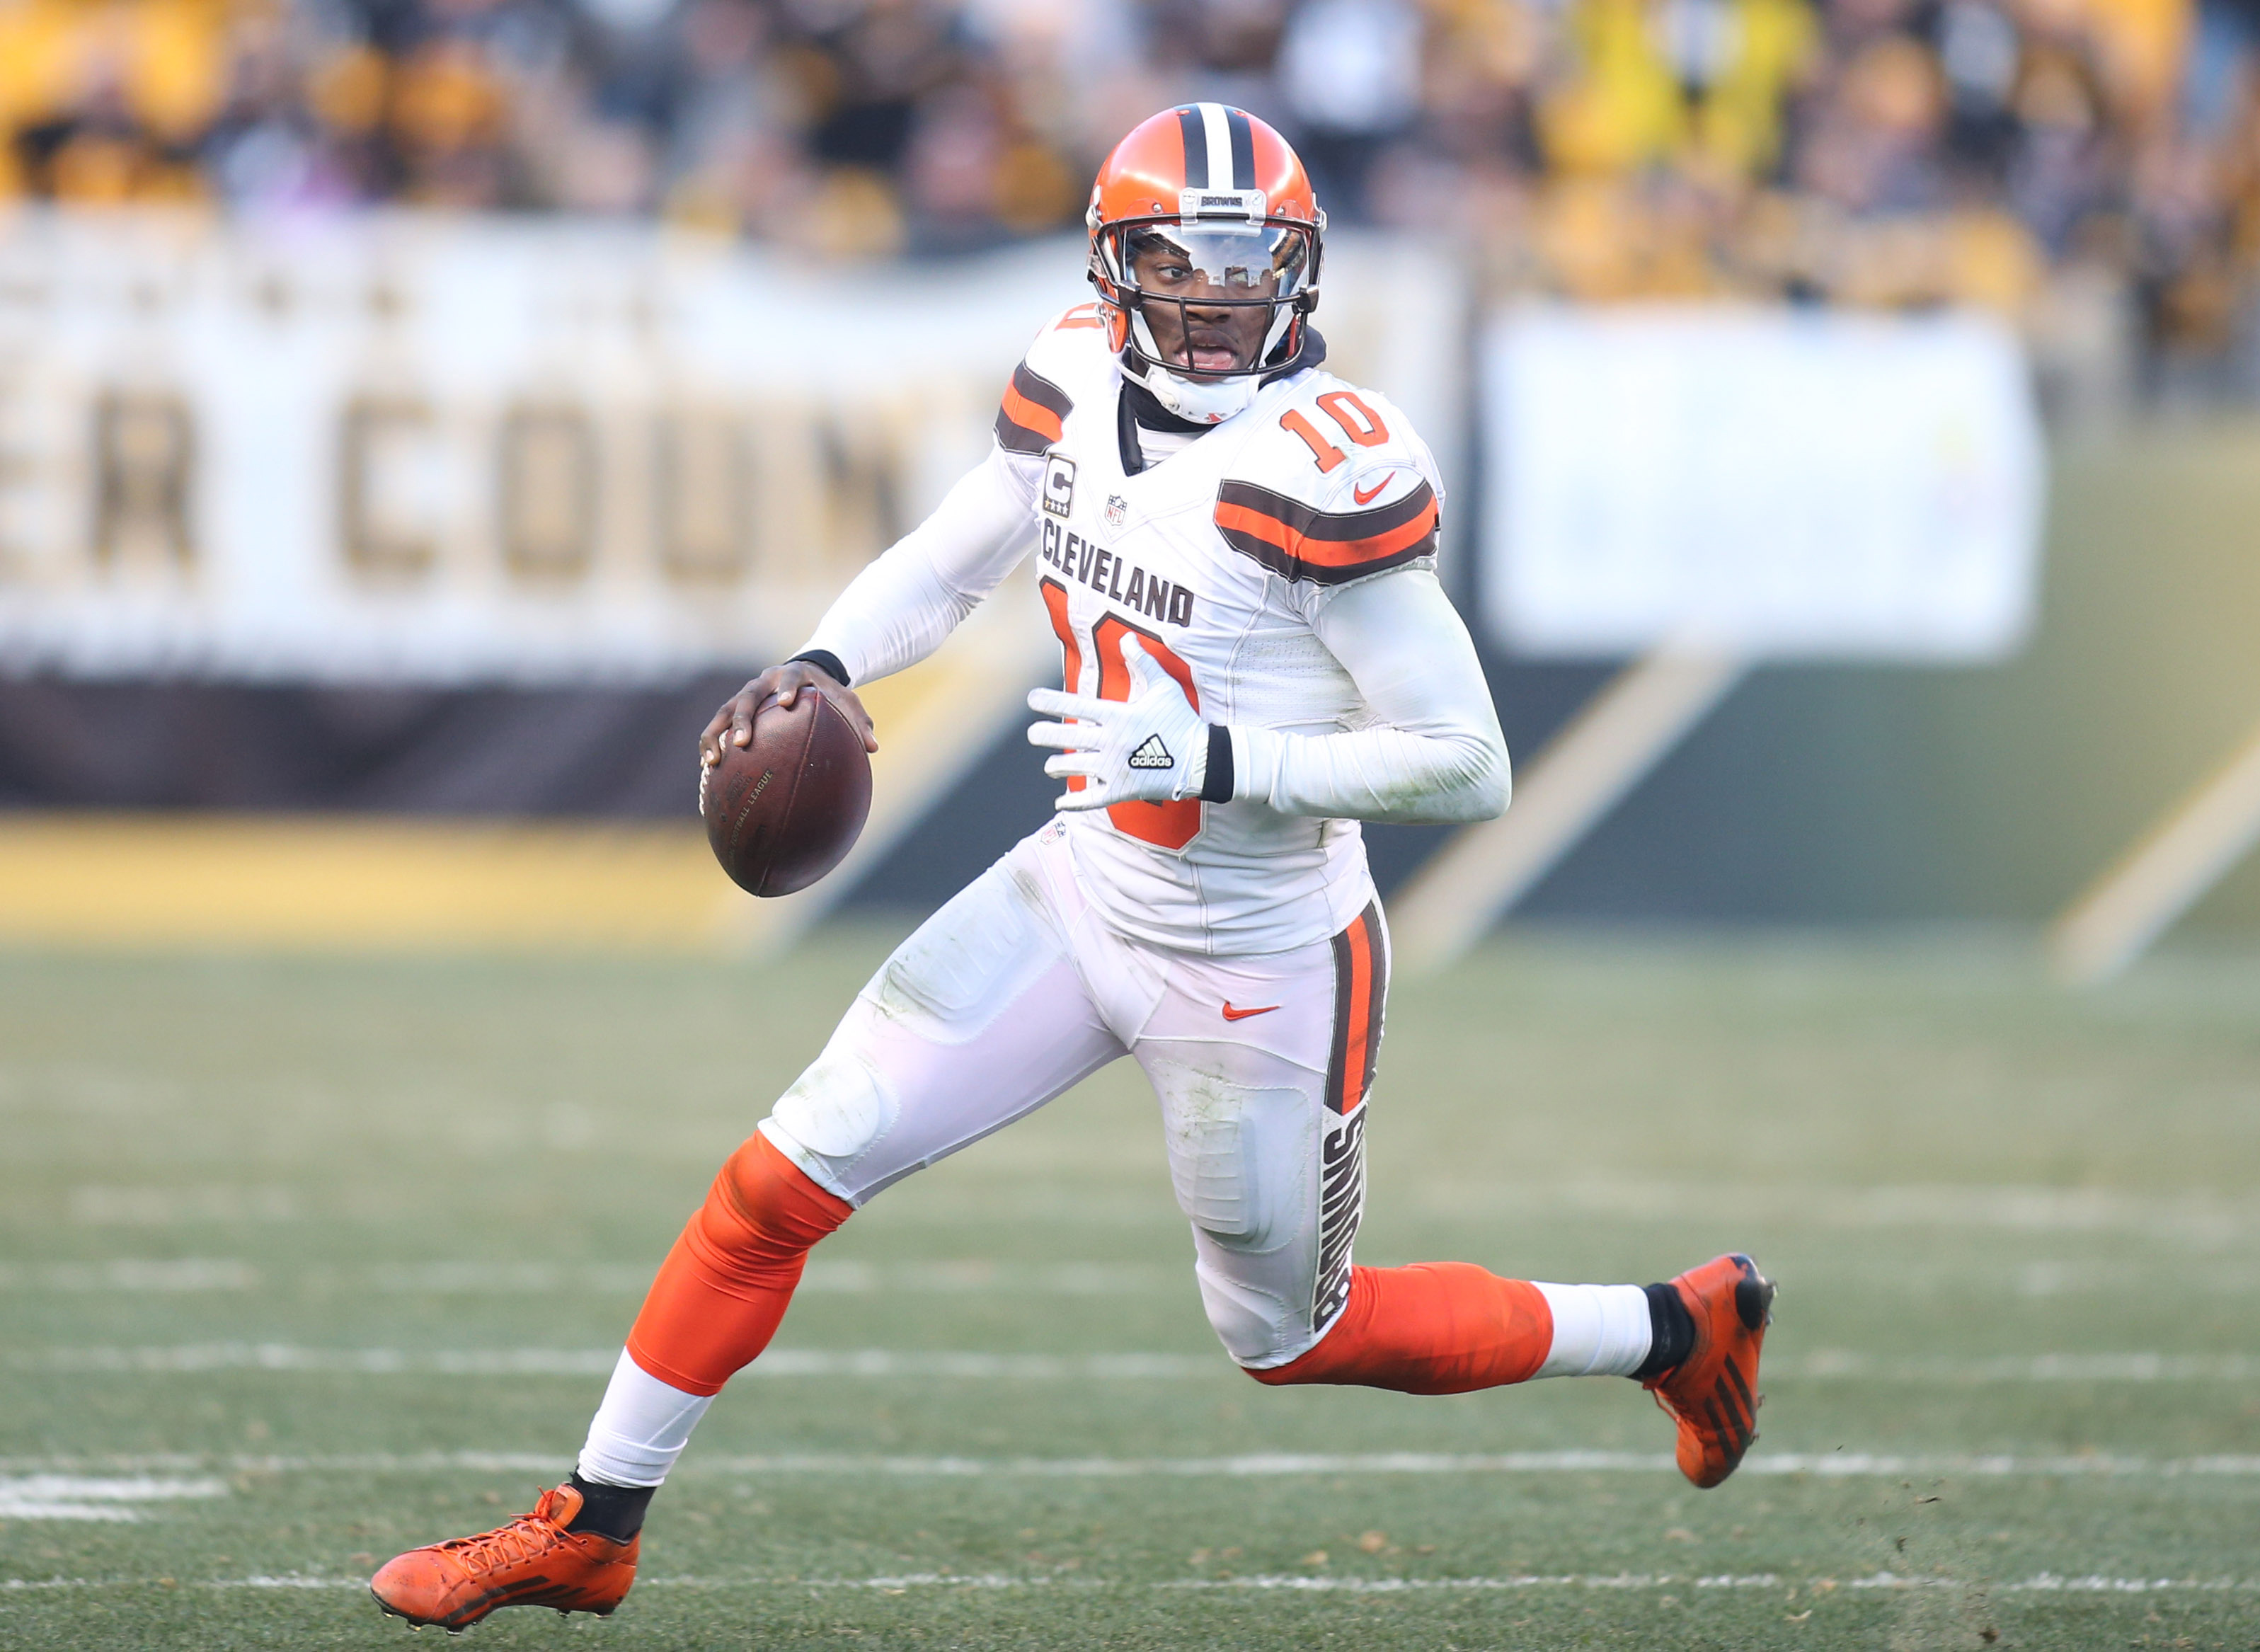 9782492-nfl-cleveland-browns-at-pittsburgh-steelers-1